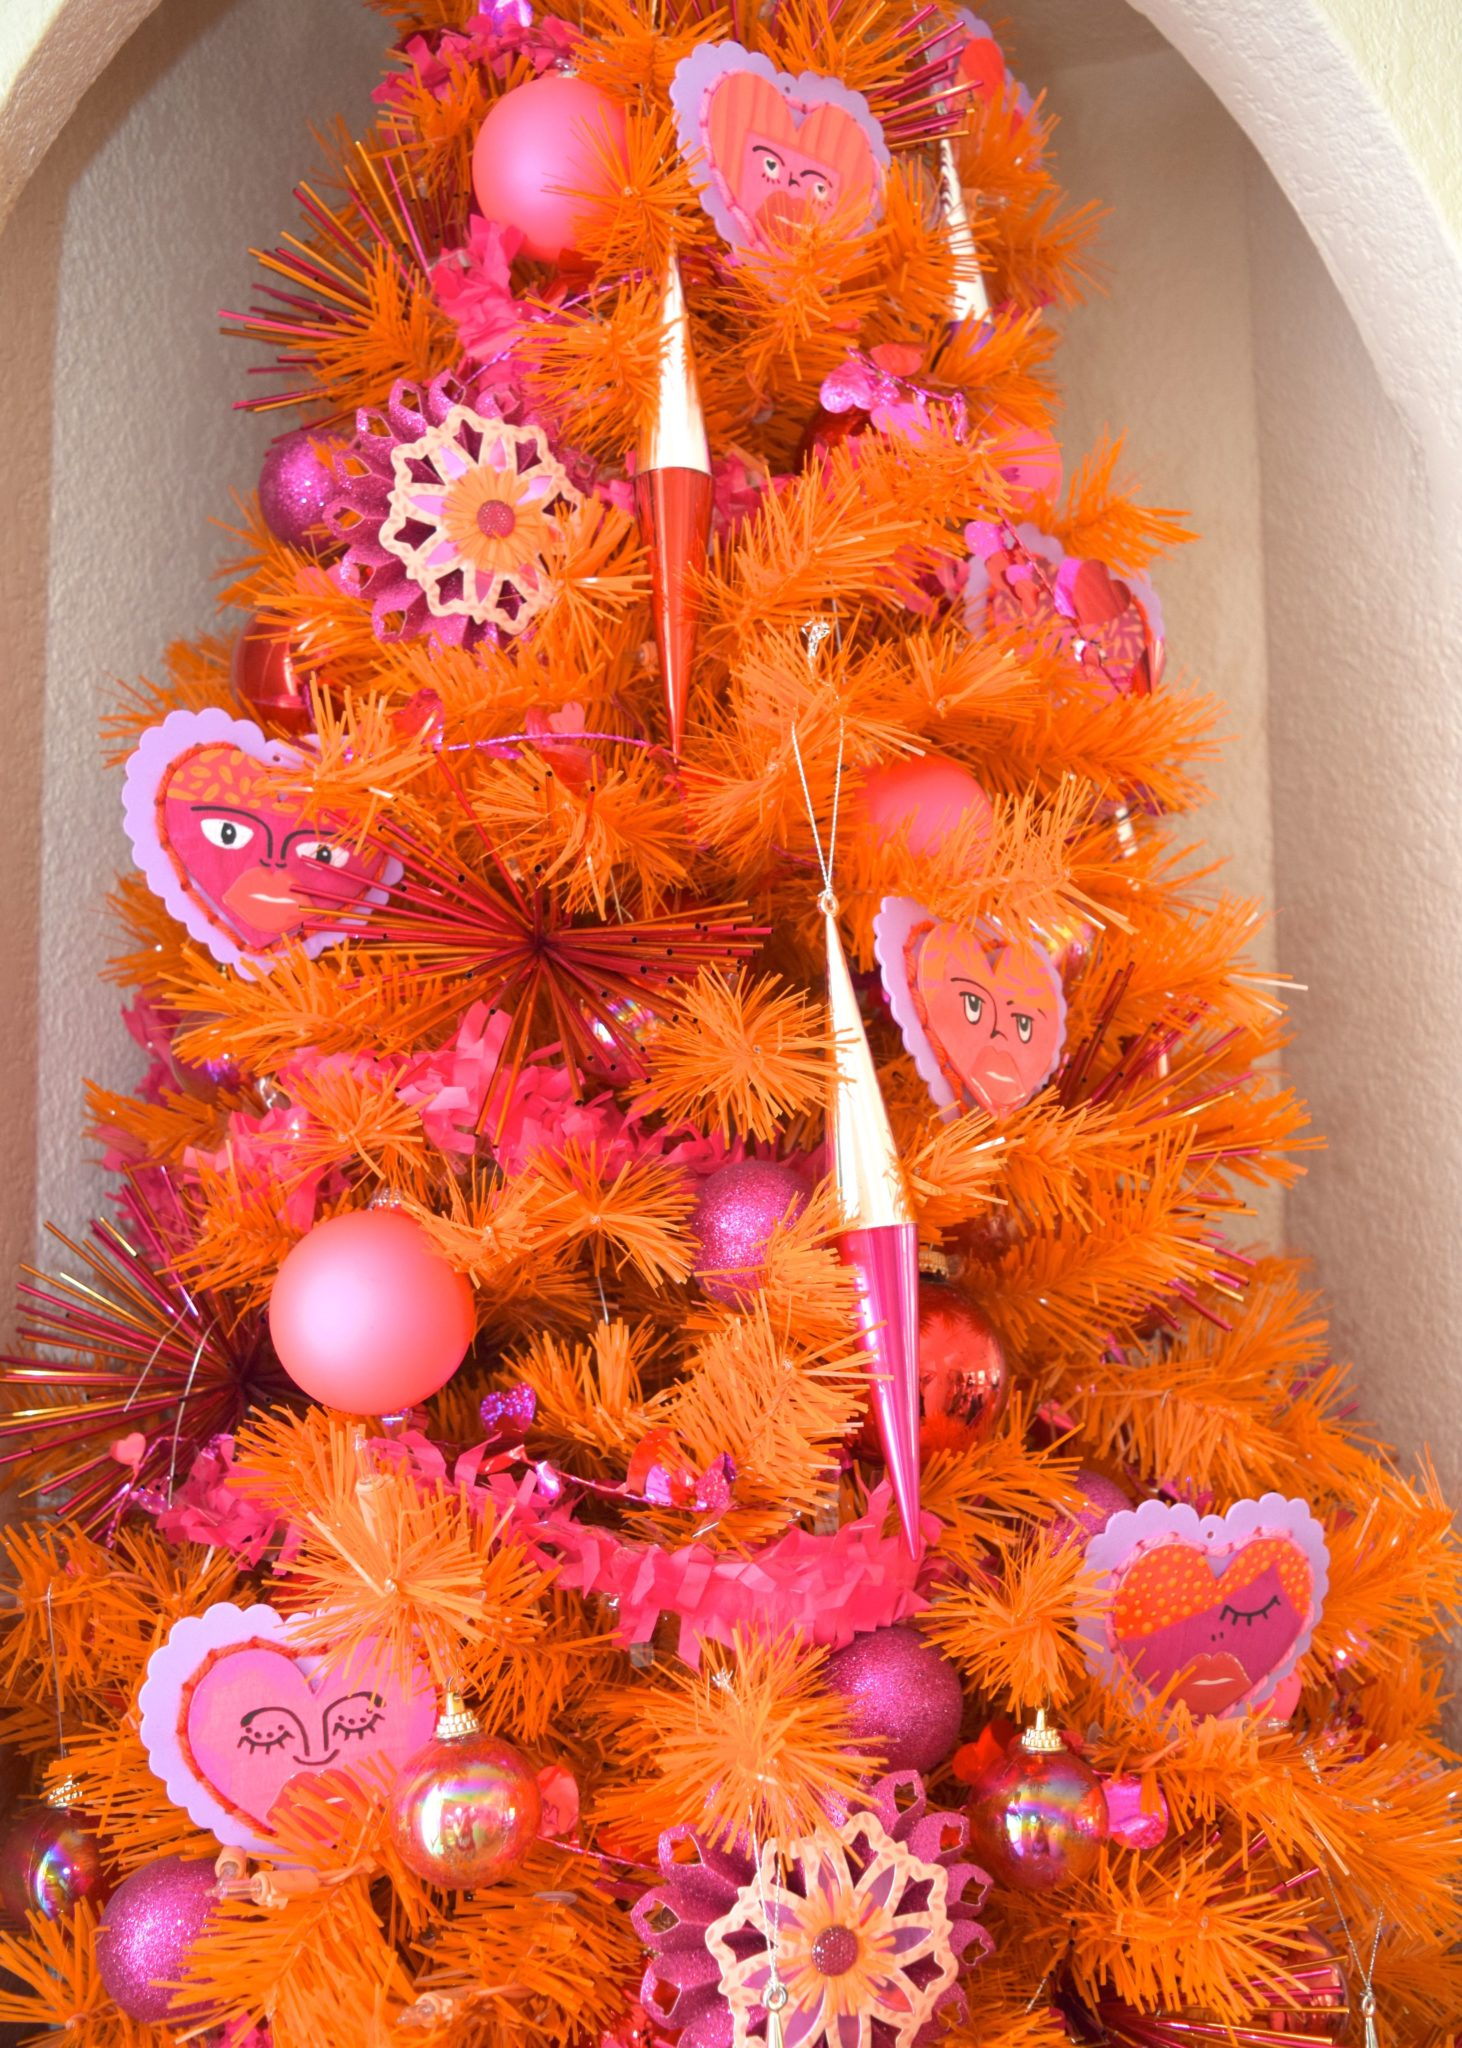 Decorating an orange tree for Valentine's Day by Jennifer Perkins